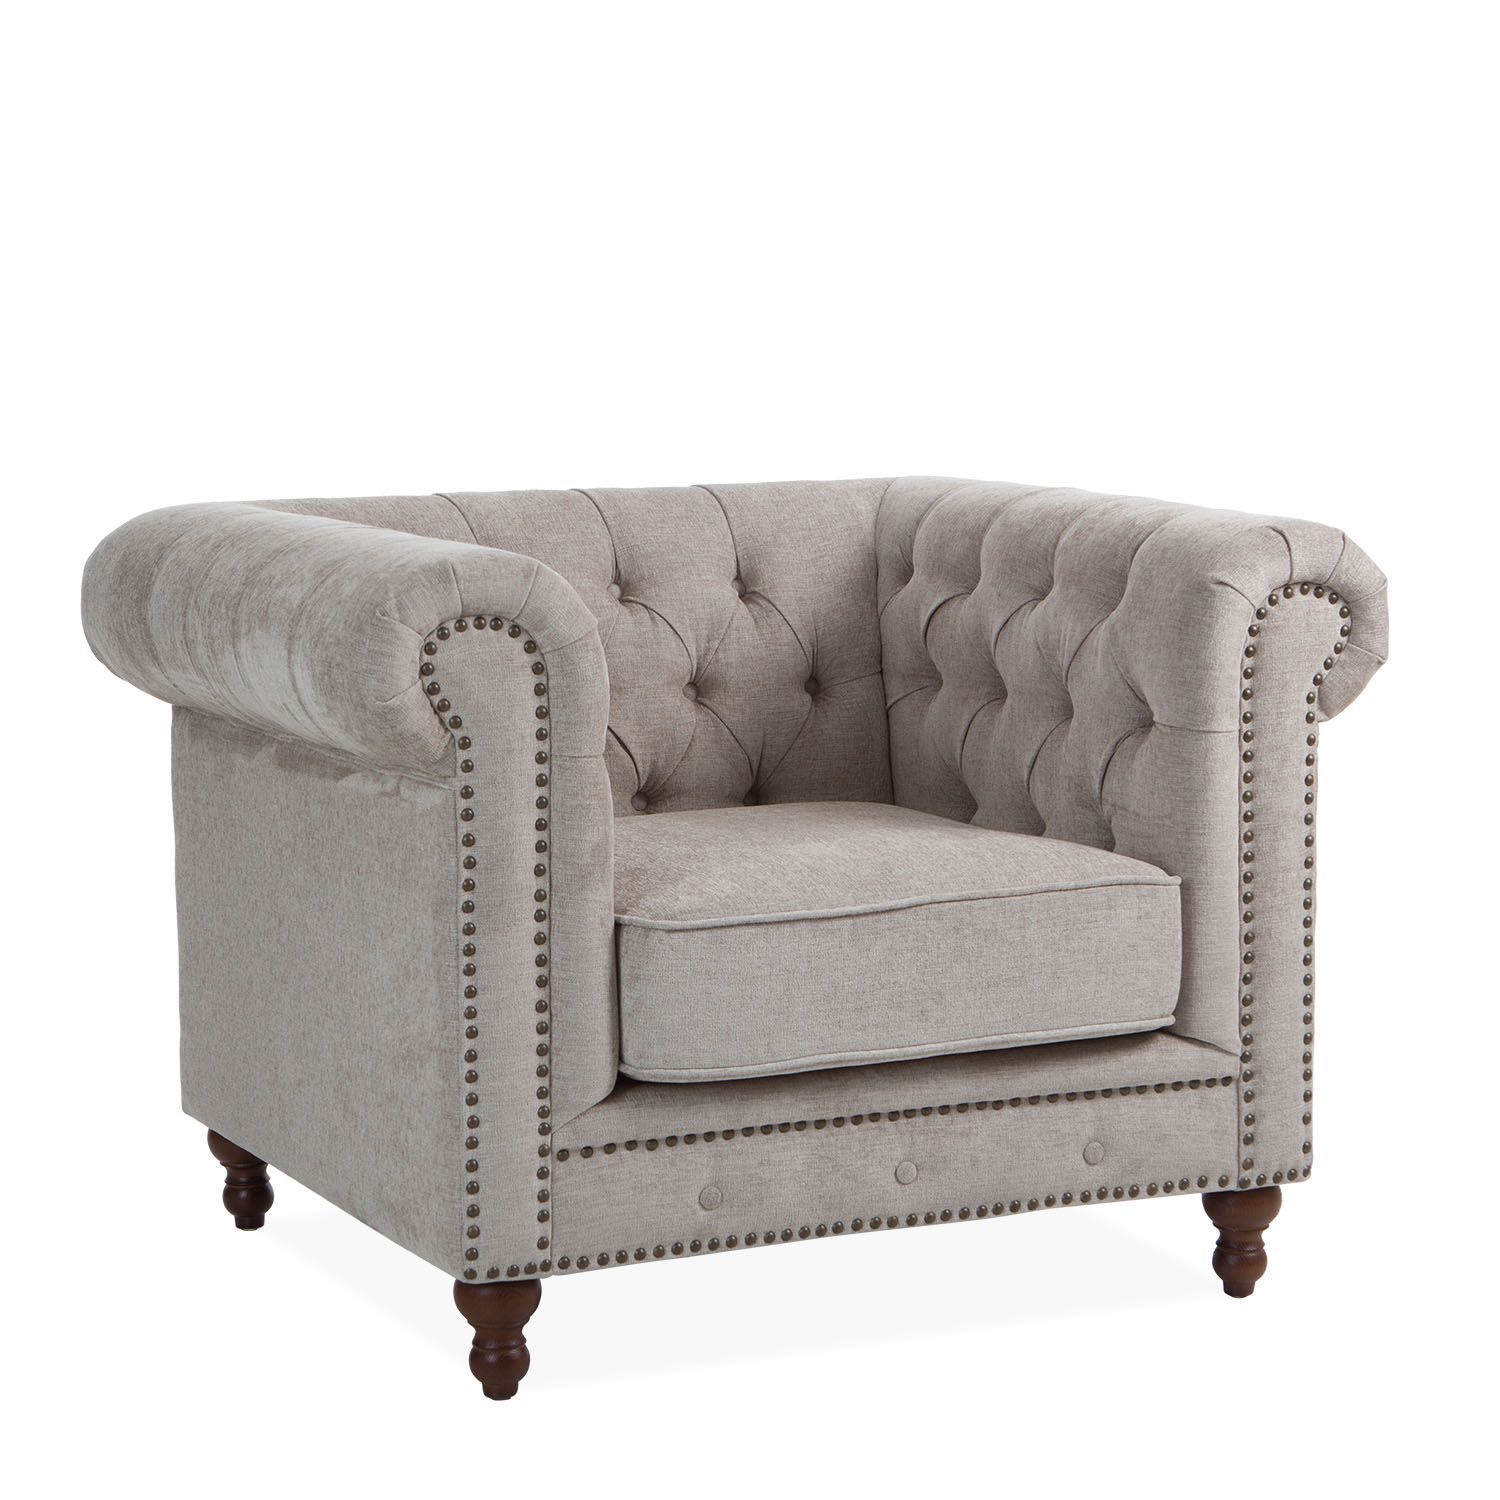 Silln CHESTER FABRIC  Muebles  Sof chester Sillones